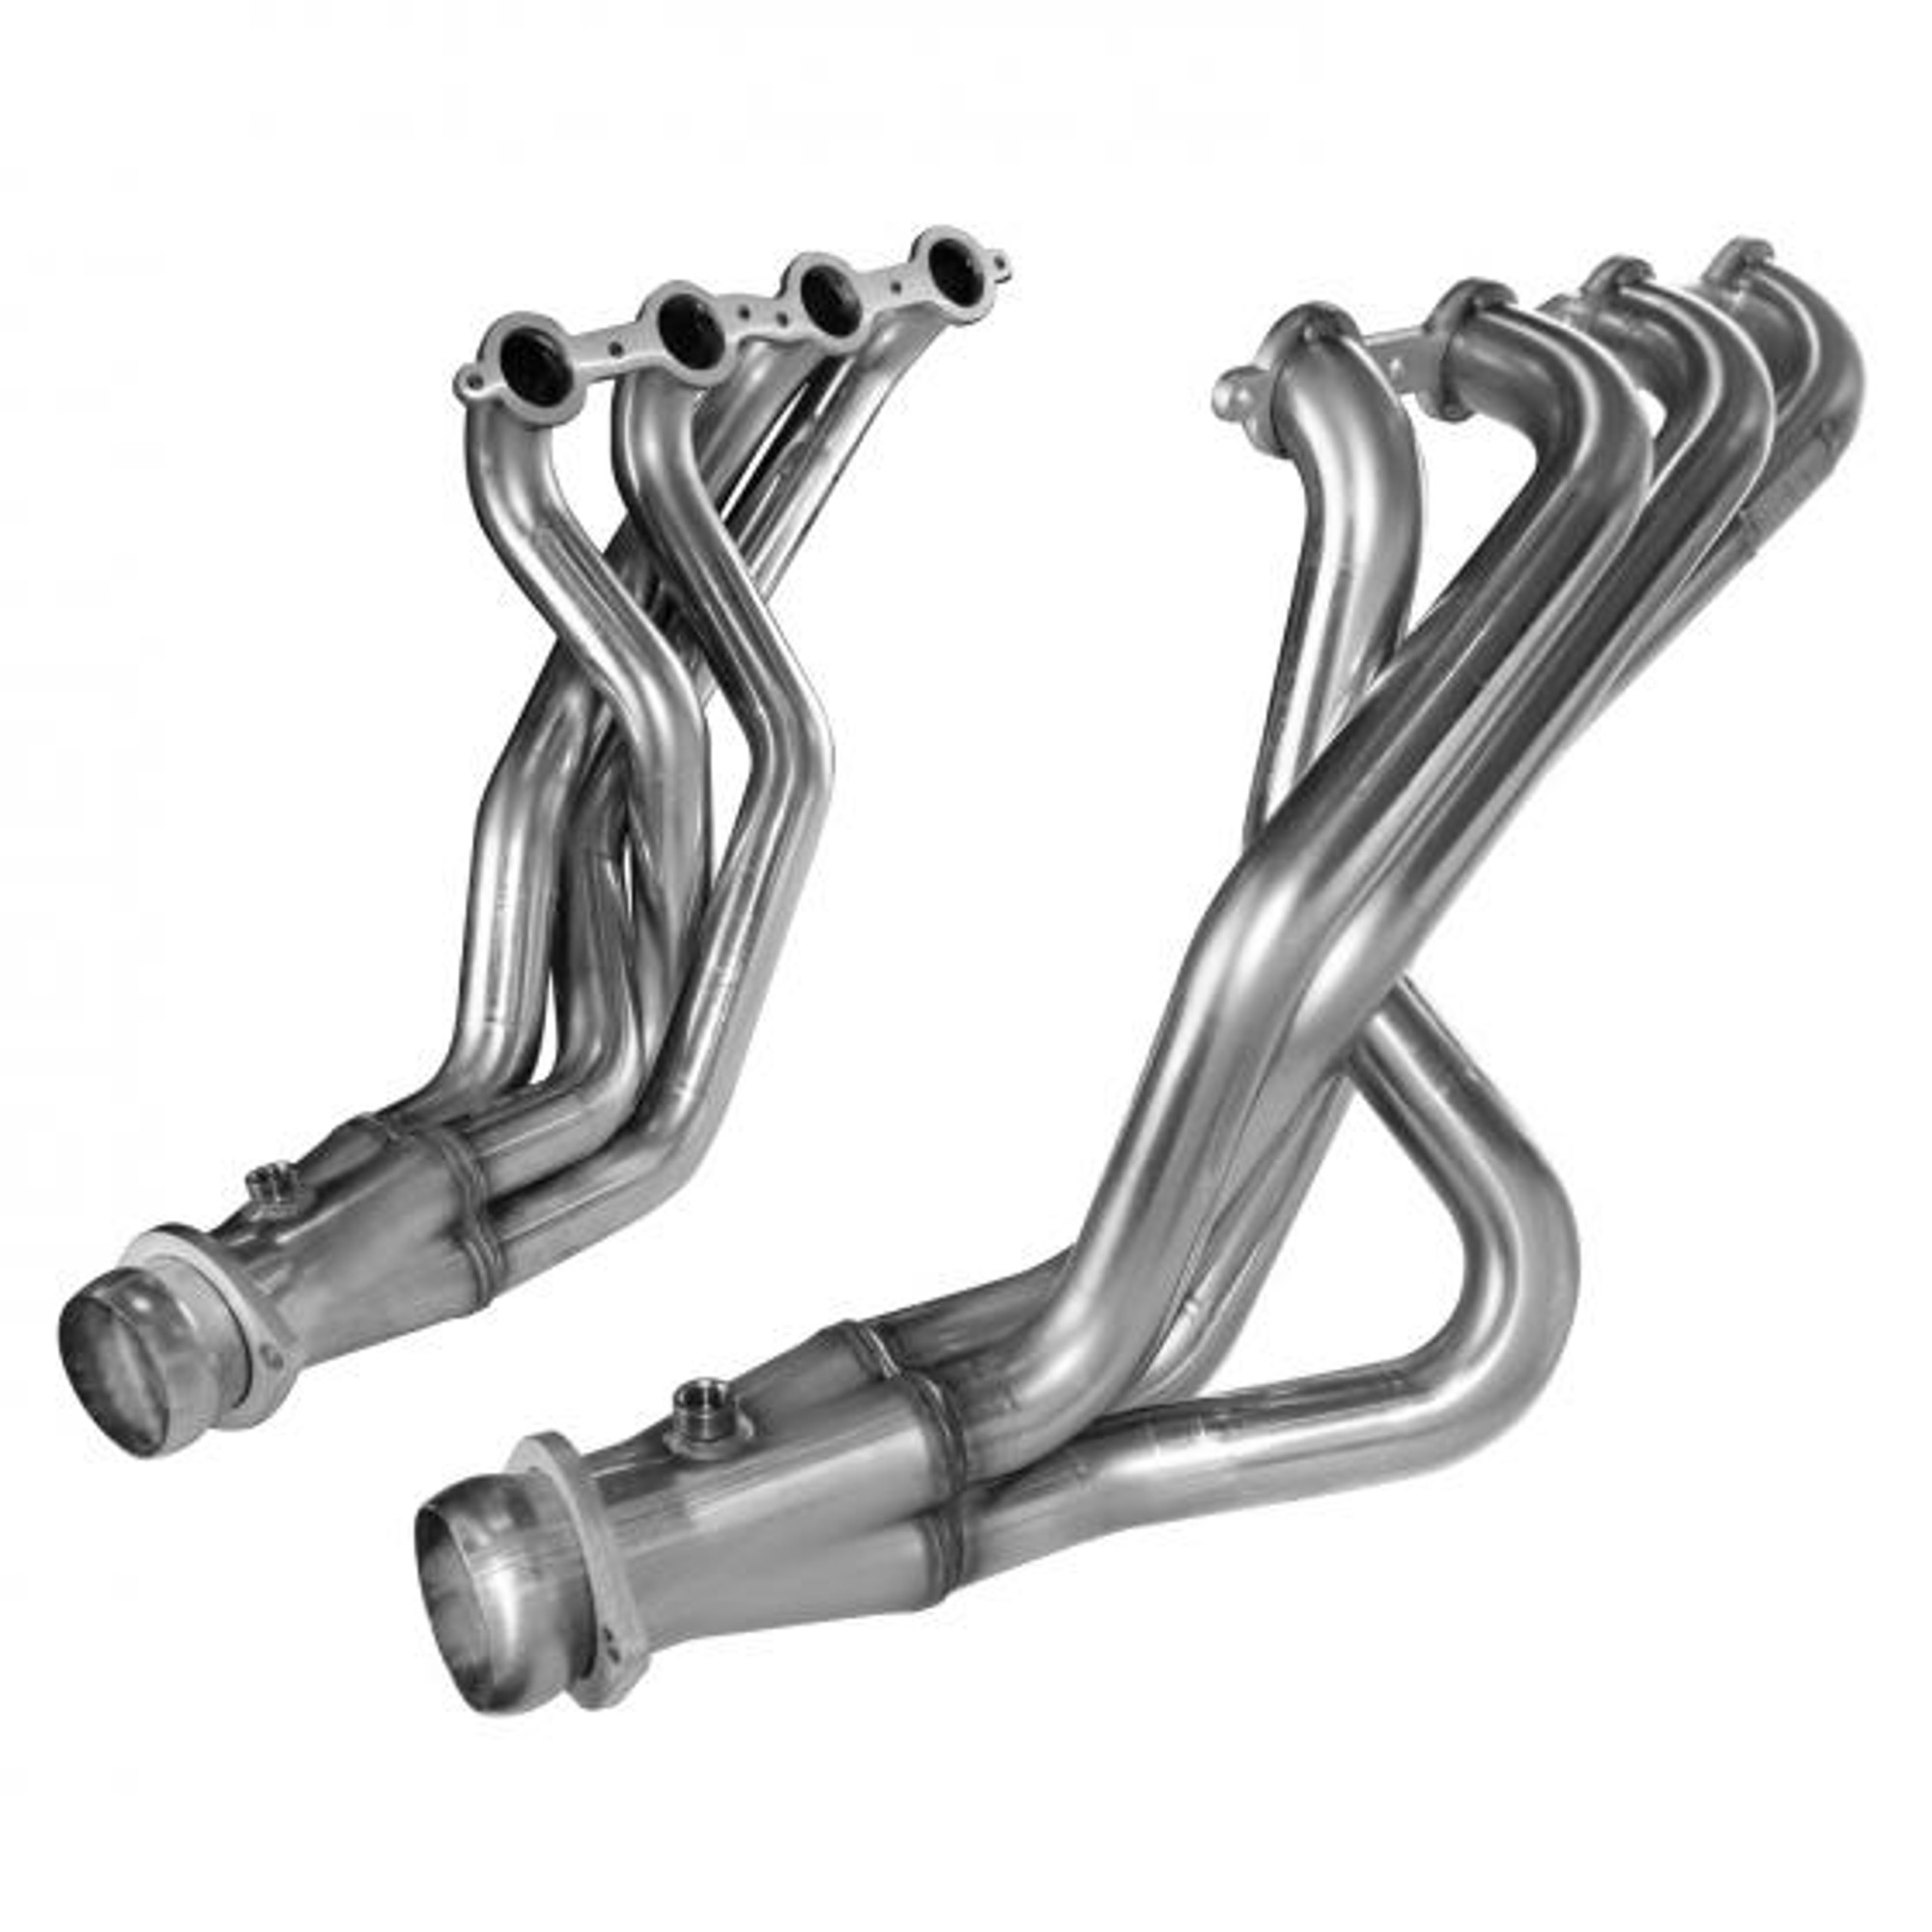 04-07 Cadillac CTS-V 1 7//8in x 3in SS Longtubeand OEM SS Off Road Connection Pipes Kooks 2310H410 Header